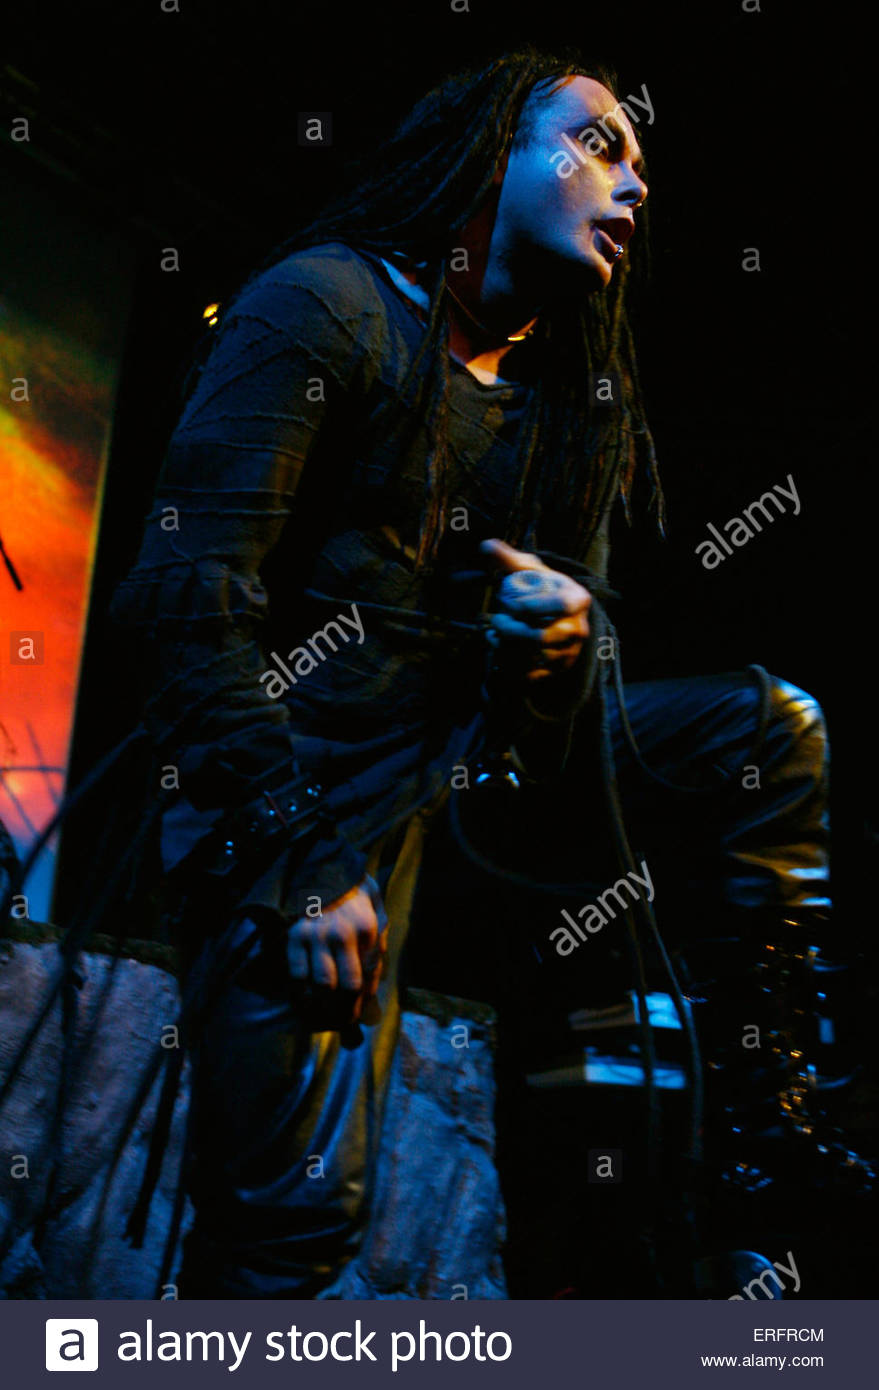 Dani Filth - vocalist of Cradle Of Filth performing in Bristol, April 2007. - Stock Image